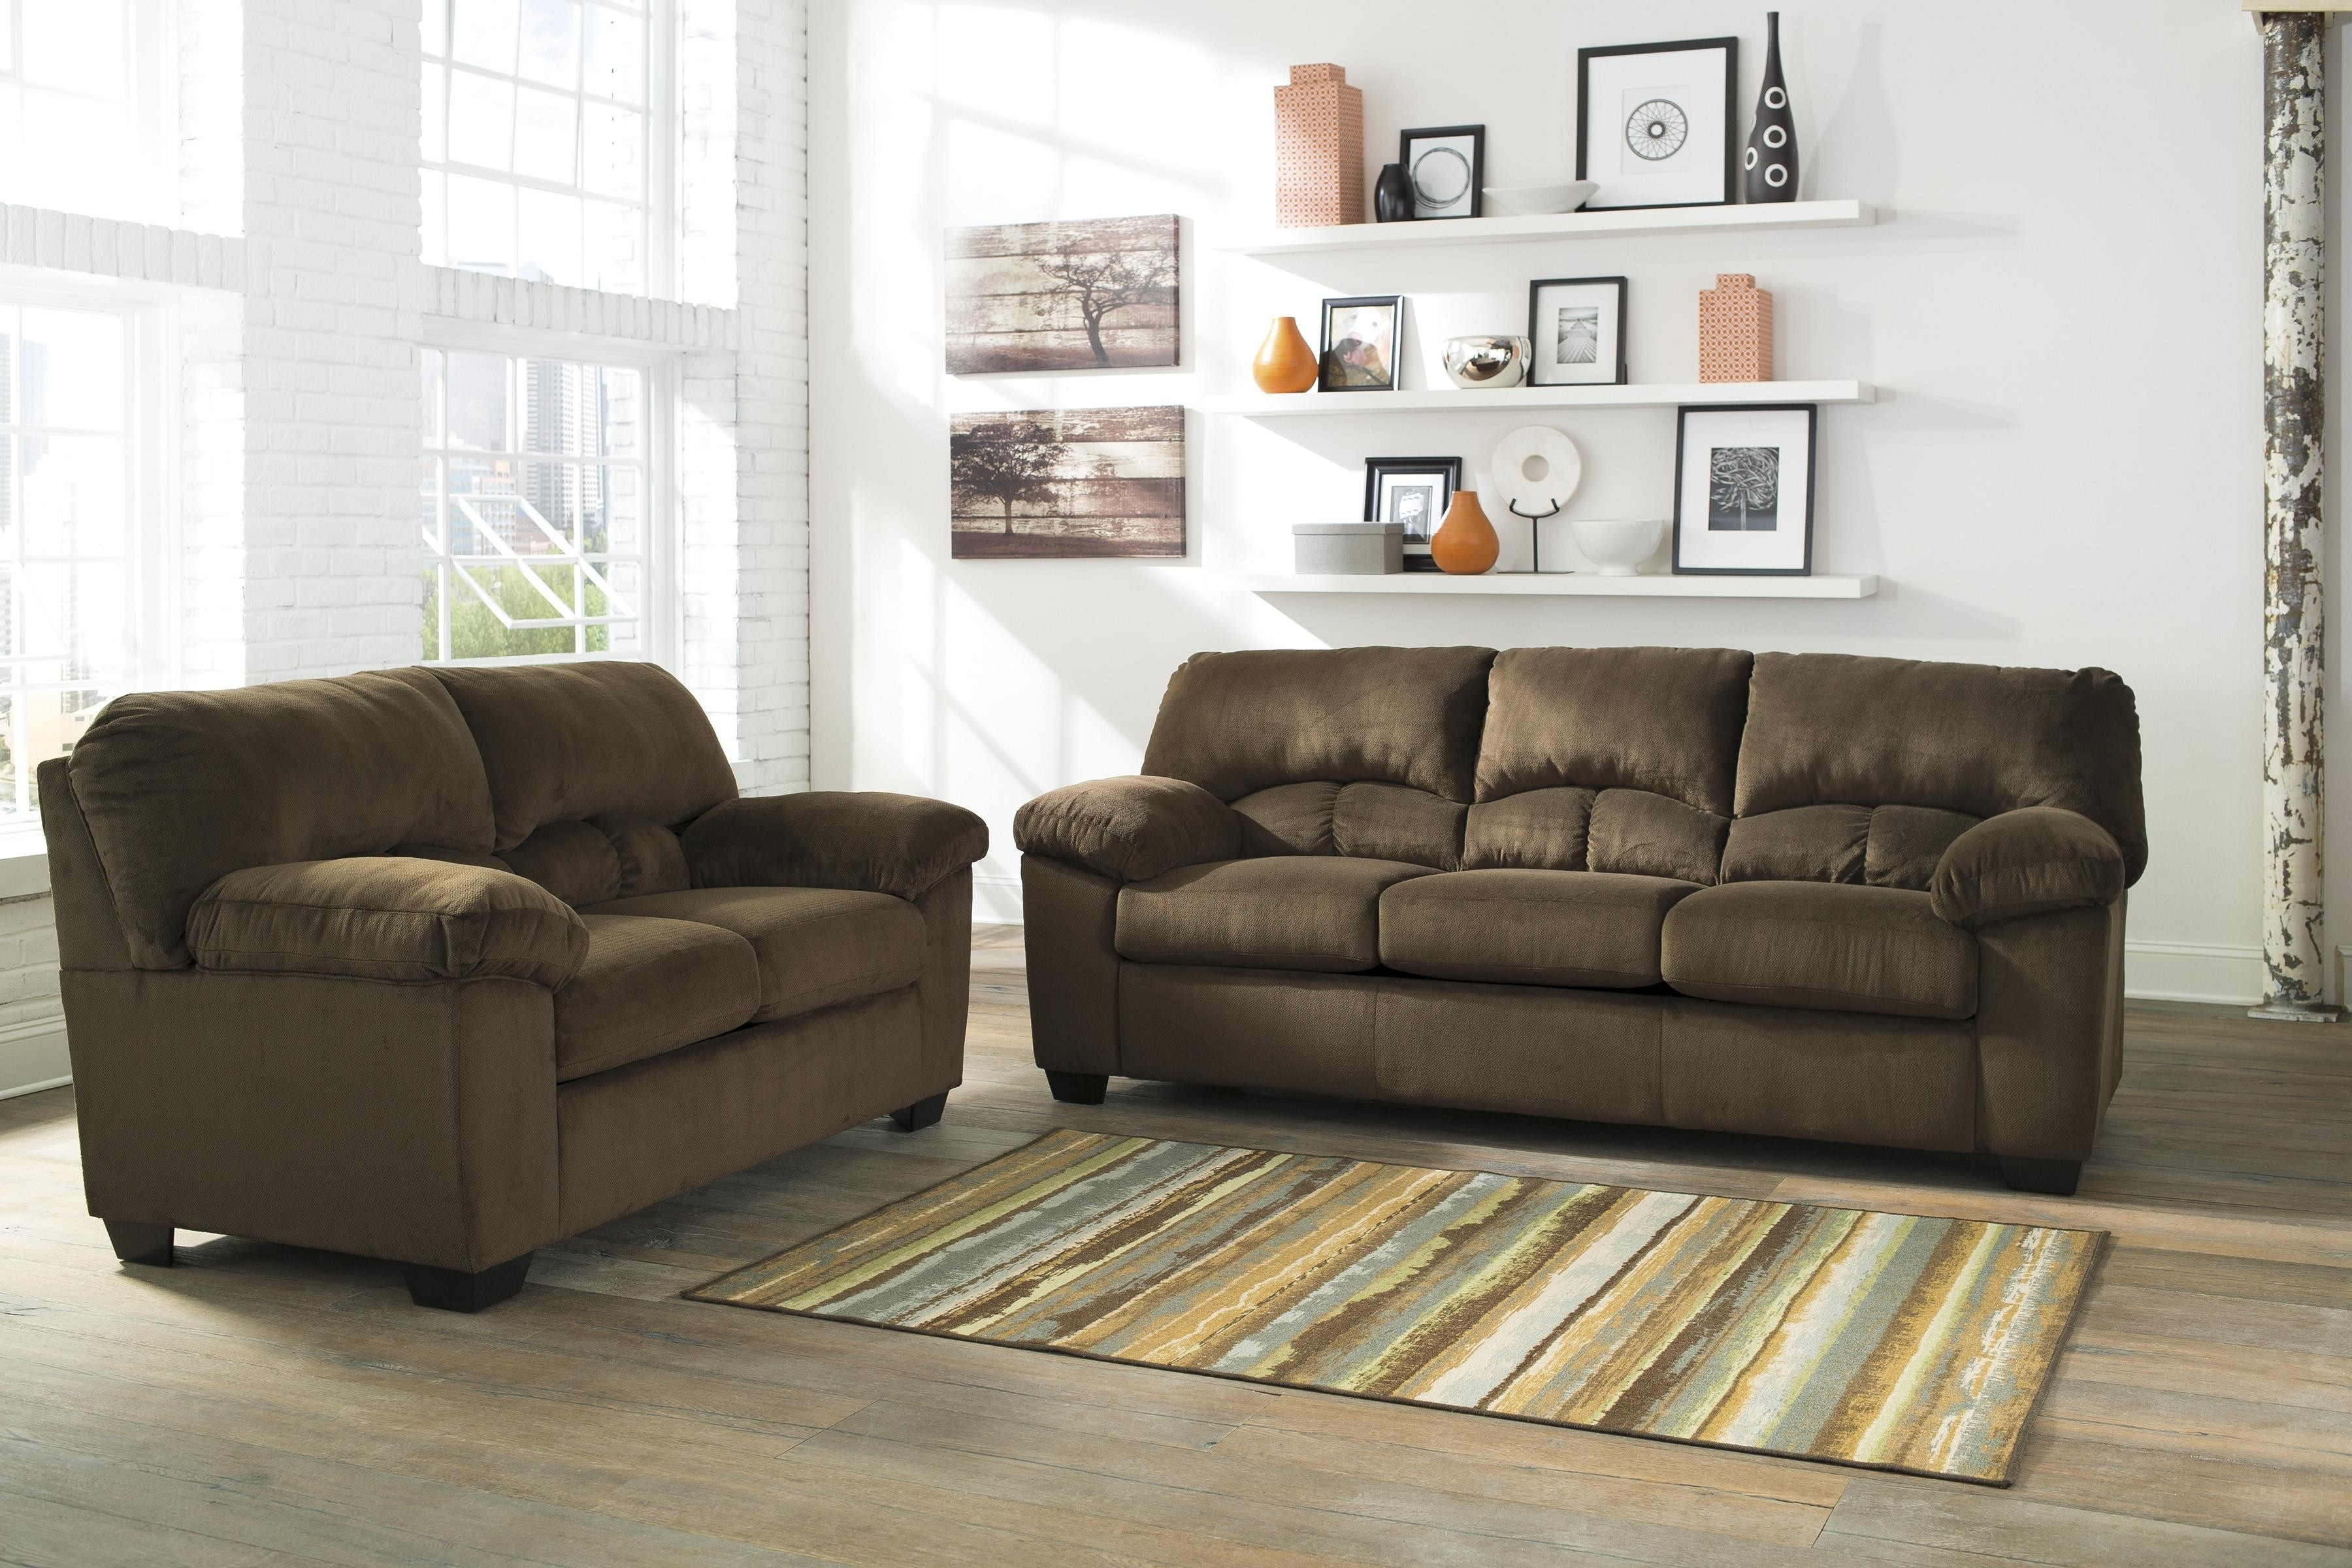 Ashley Furniture In Harrisburg Pa With Regard To Most Current Harrisburg Pa Sectional Sofas (View 7 of 15)